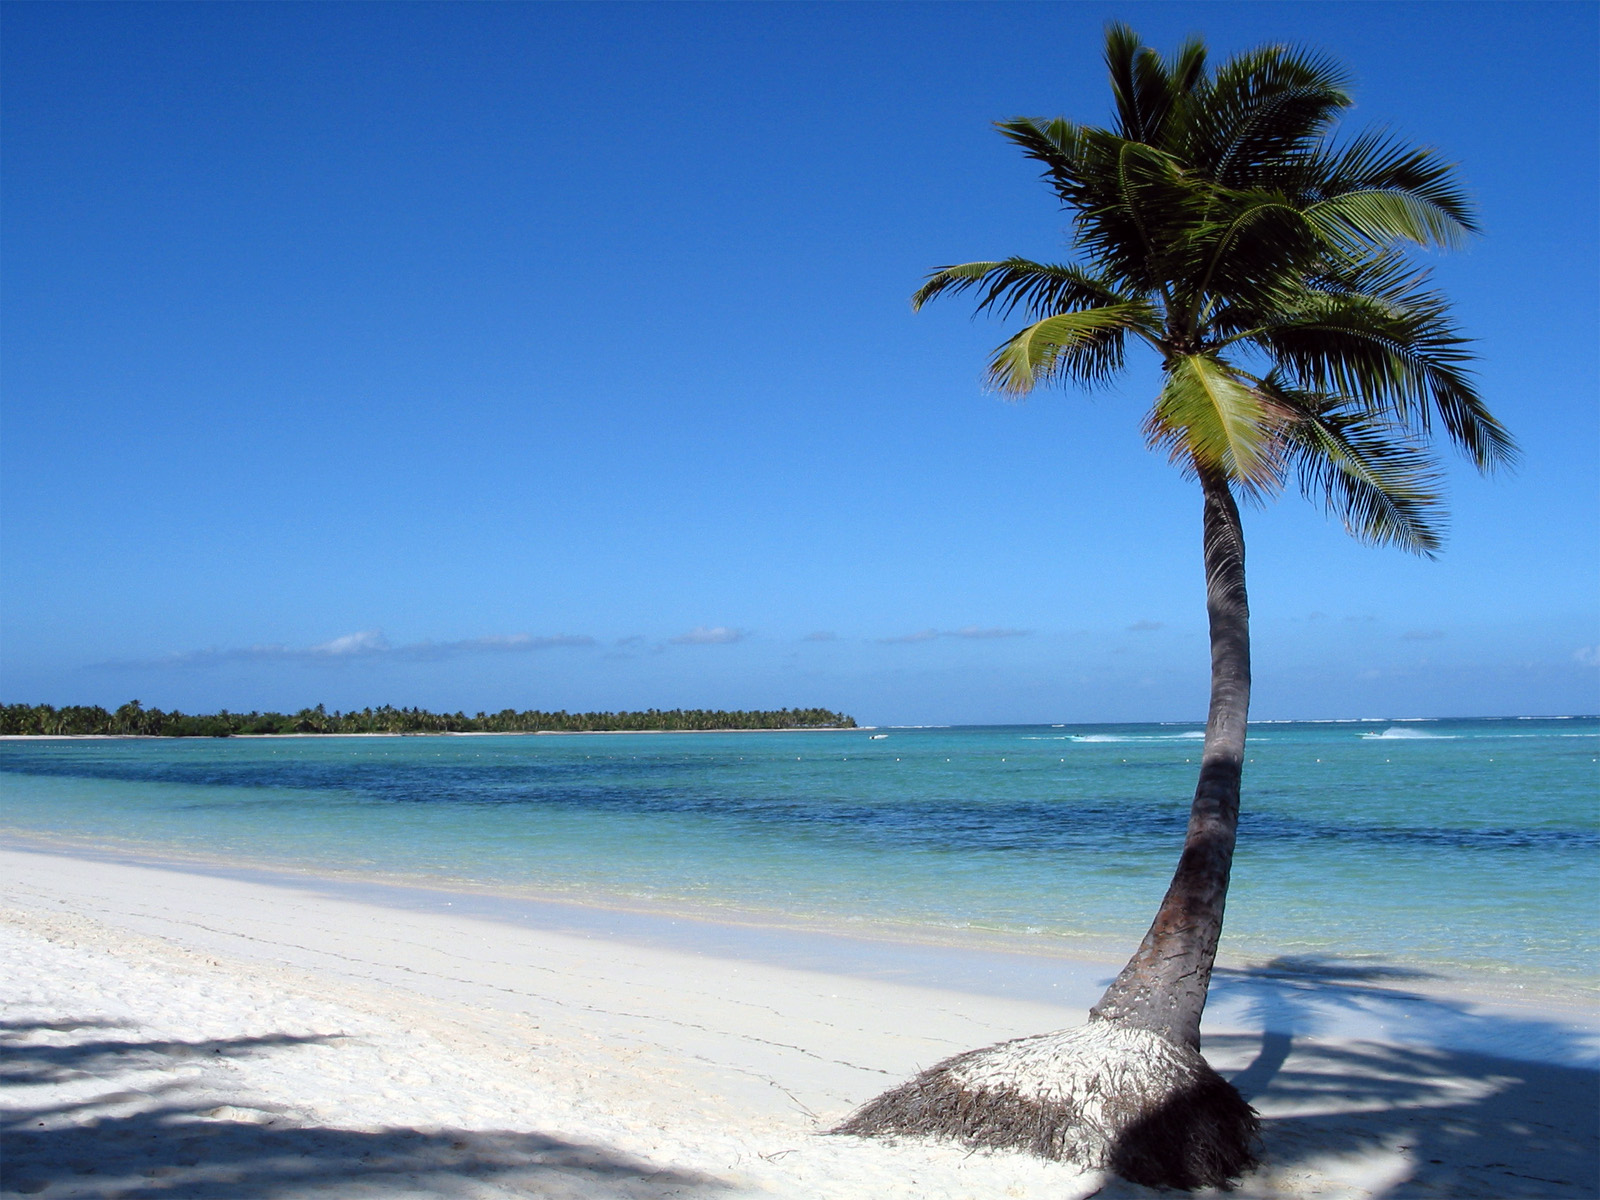 HD Pictures Of Palm Trees Wallpapers and Photos HD Beach Wallpapers 1600x1200